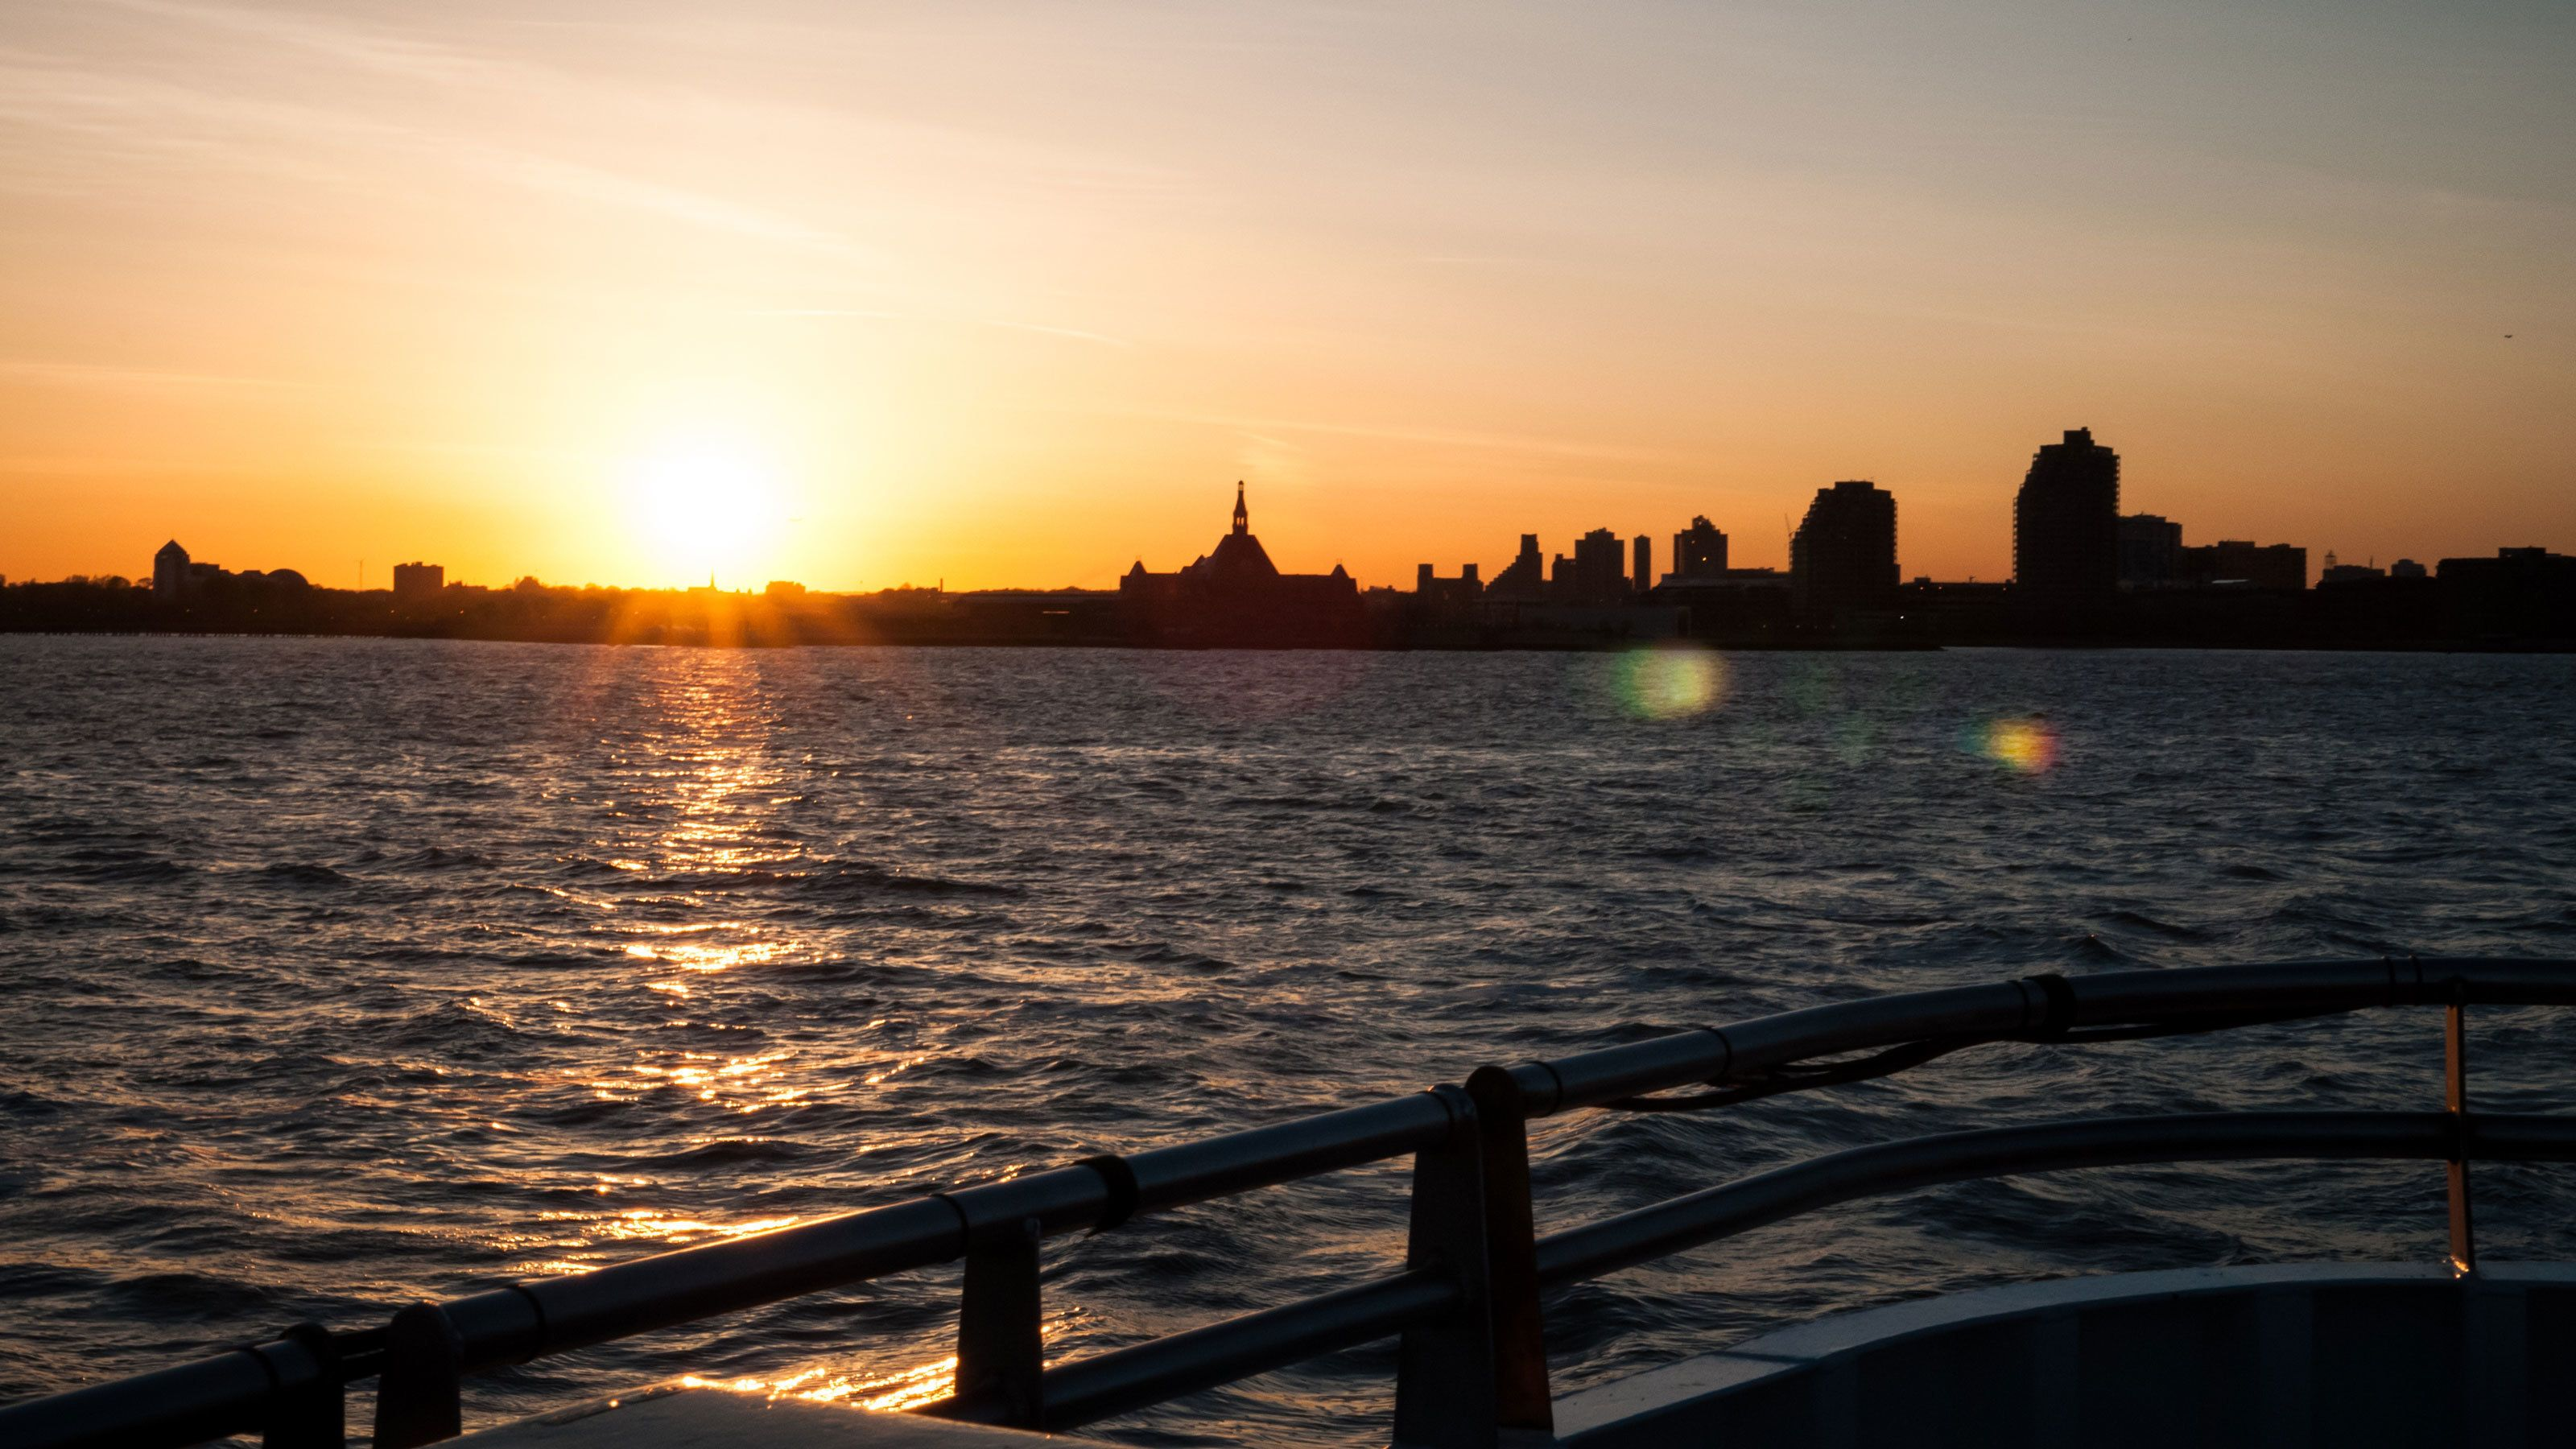 Skyline of the city at sunset from the deck of a boat in New York